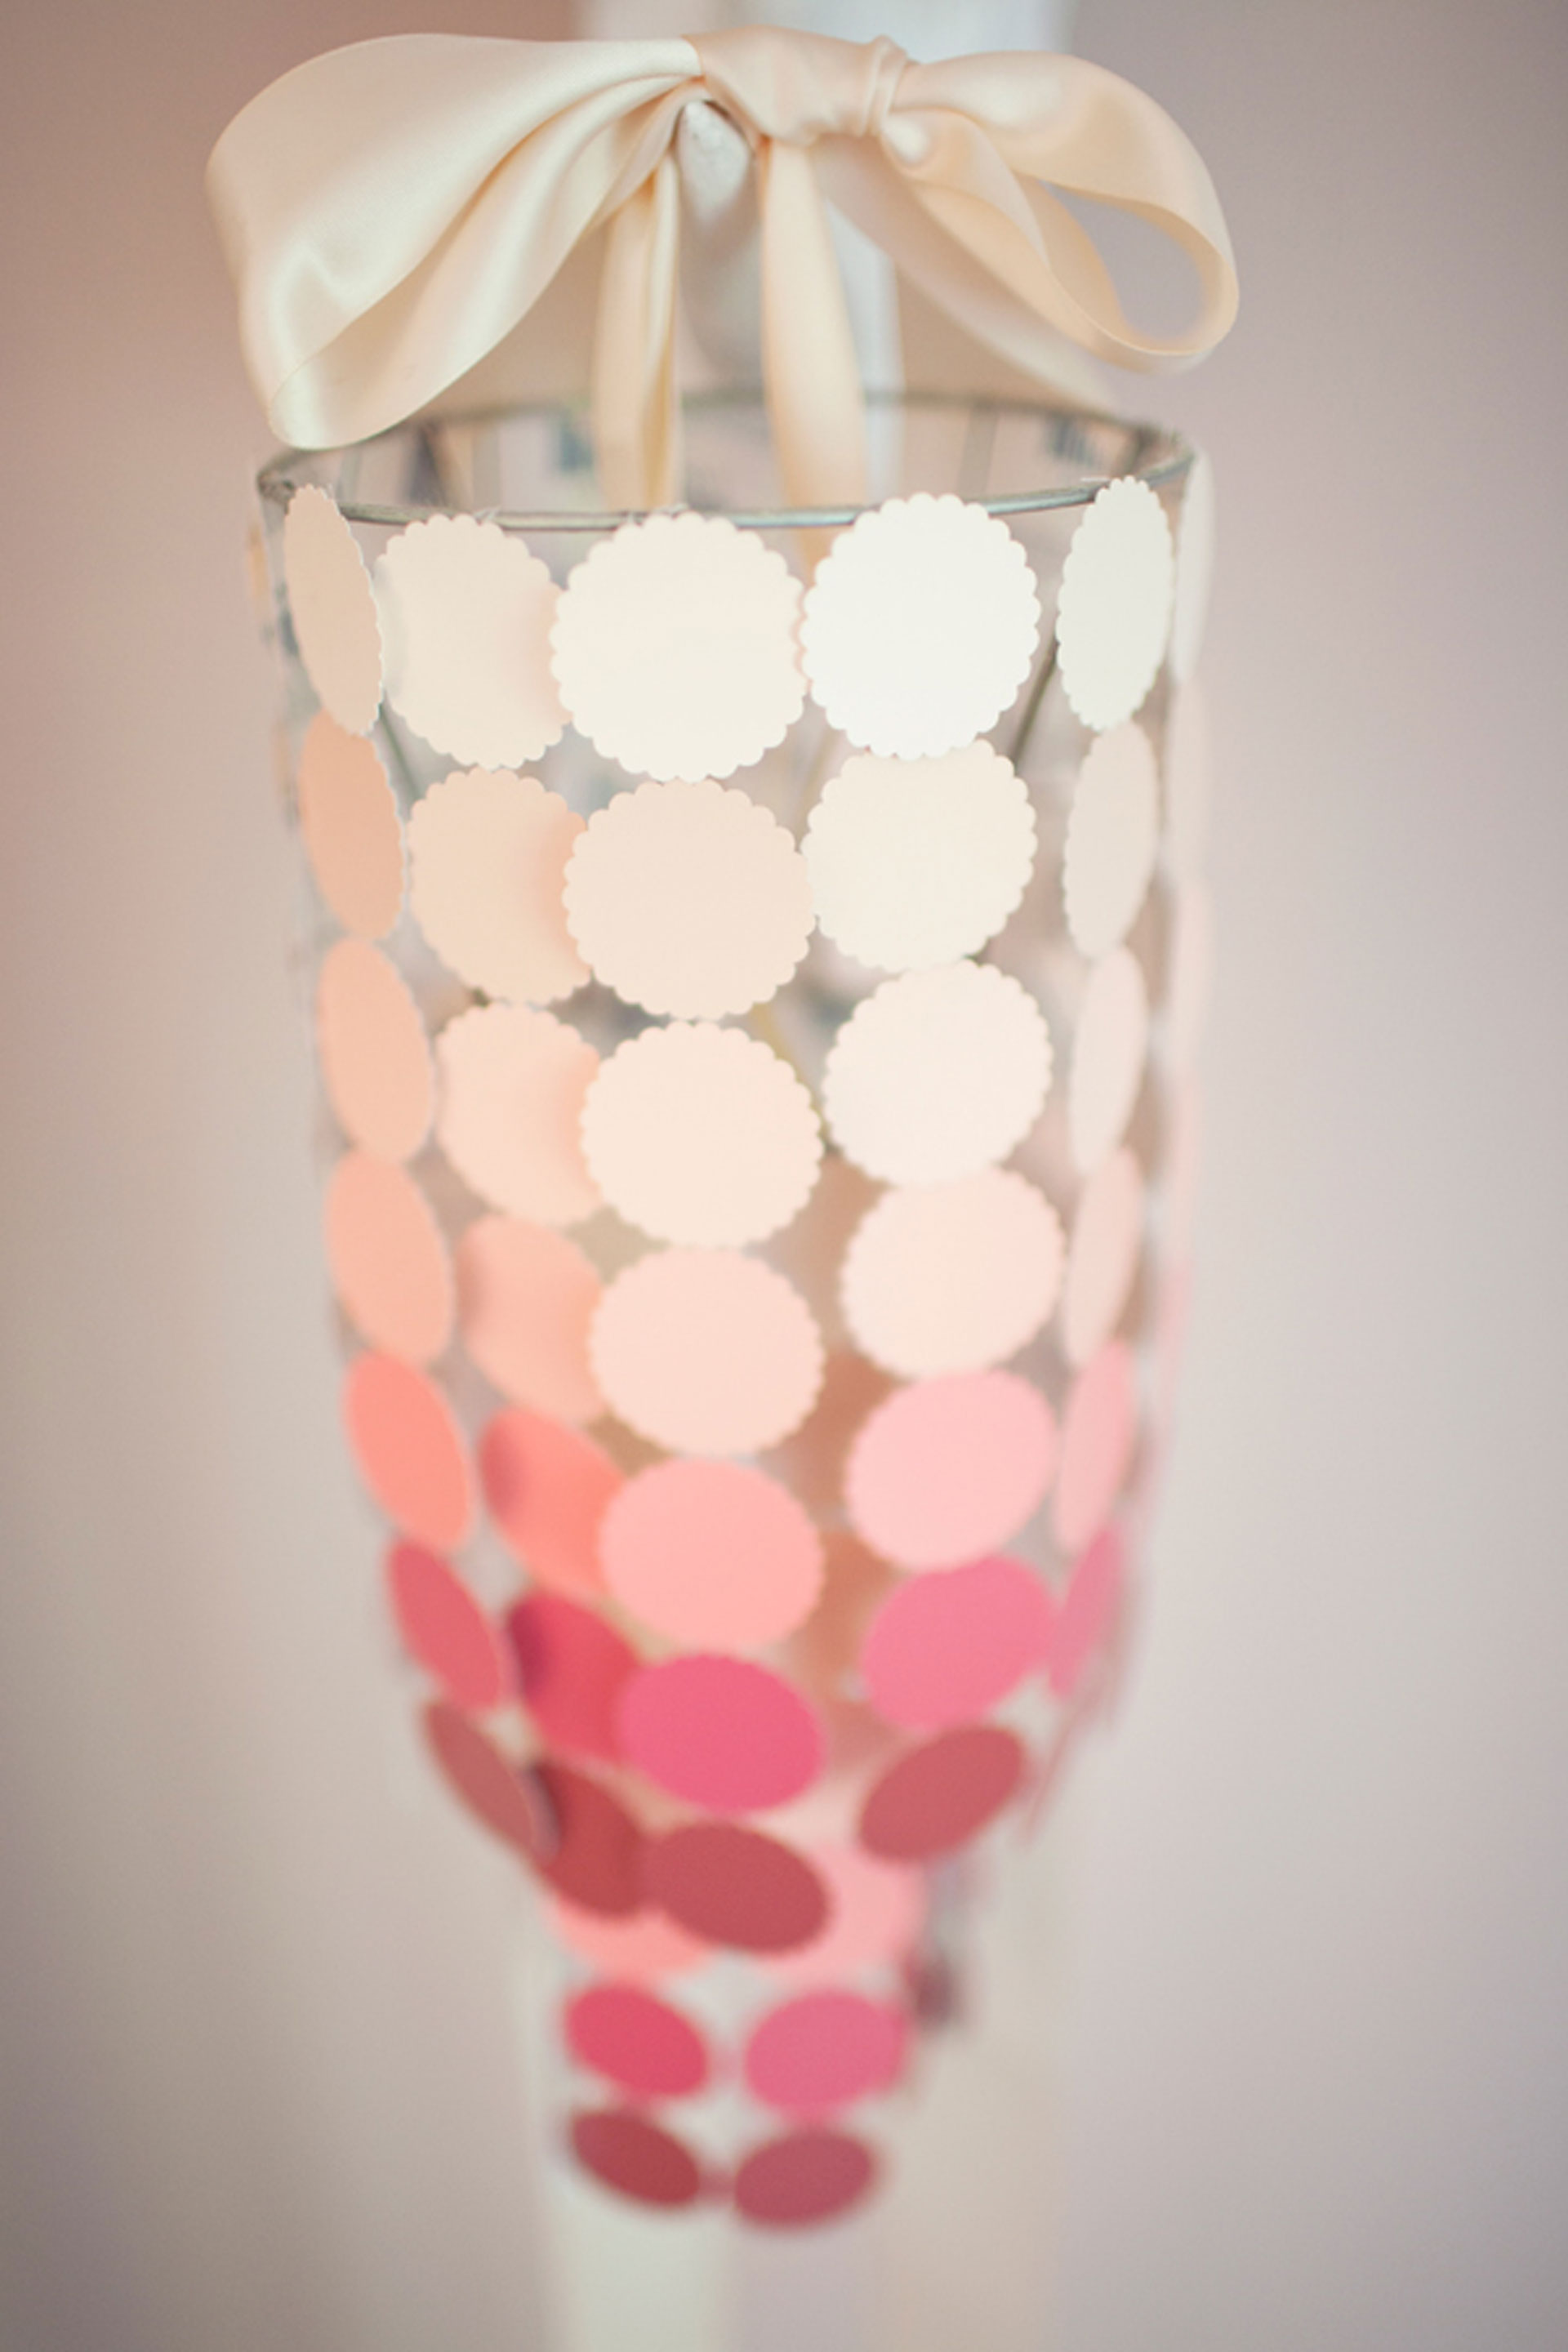 DIY Projects Using Paint Chips - Easy Paint Chip Crafts for Paper Chandelier Craft  587fsj